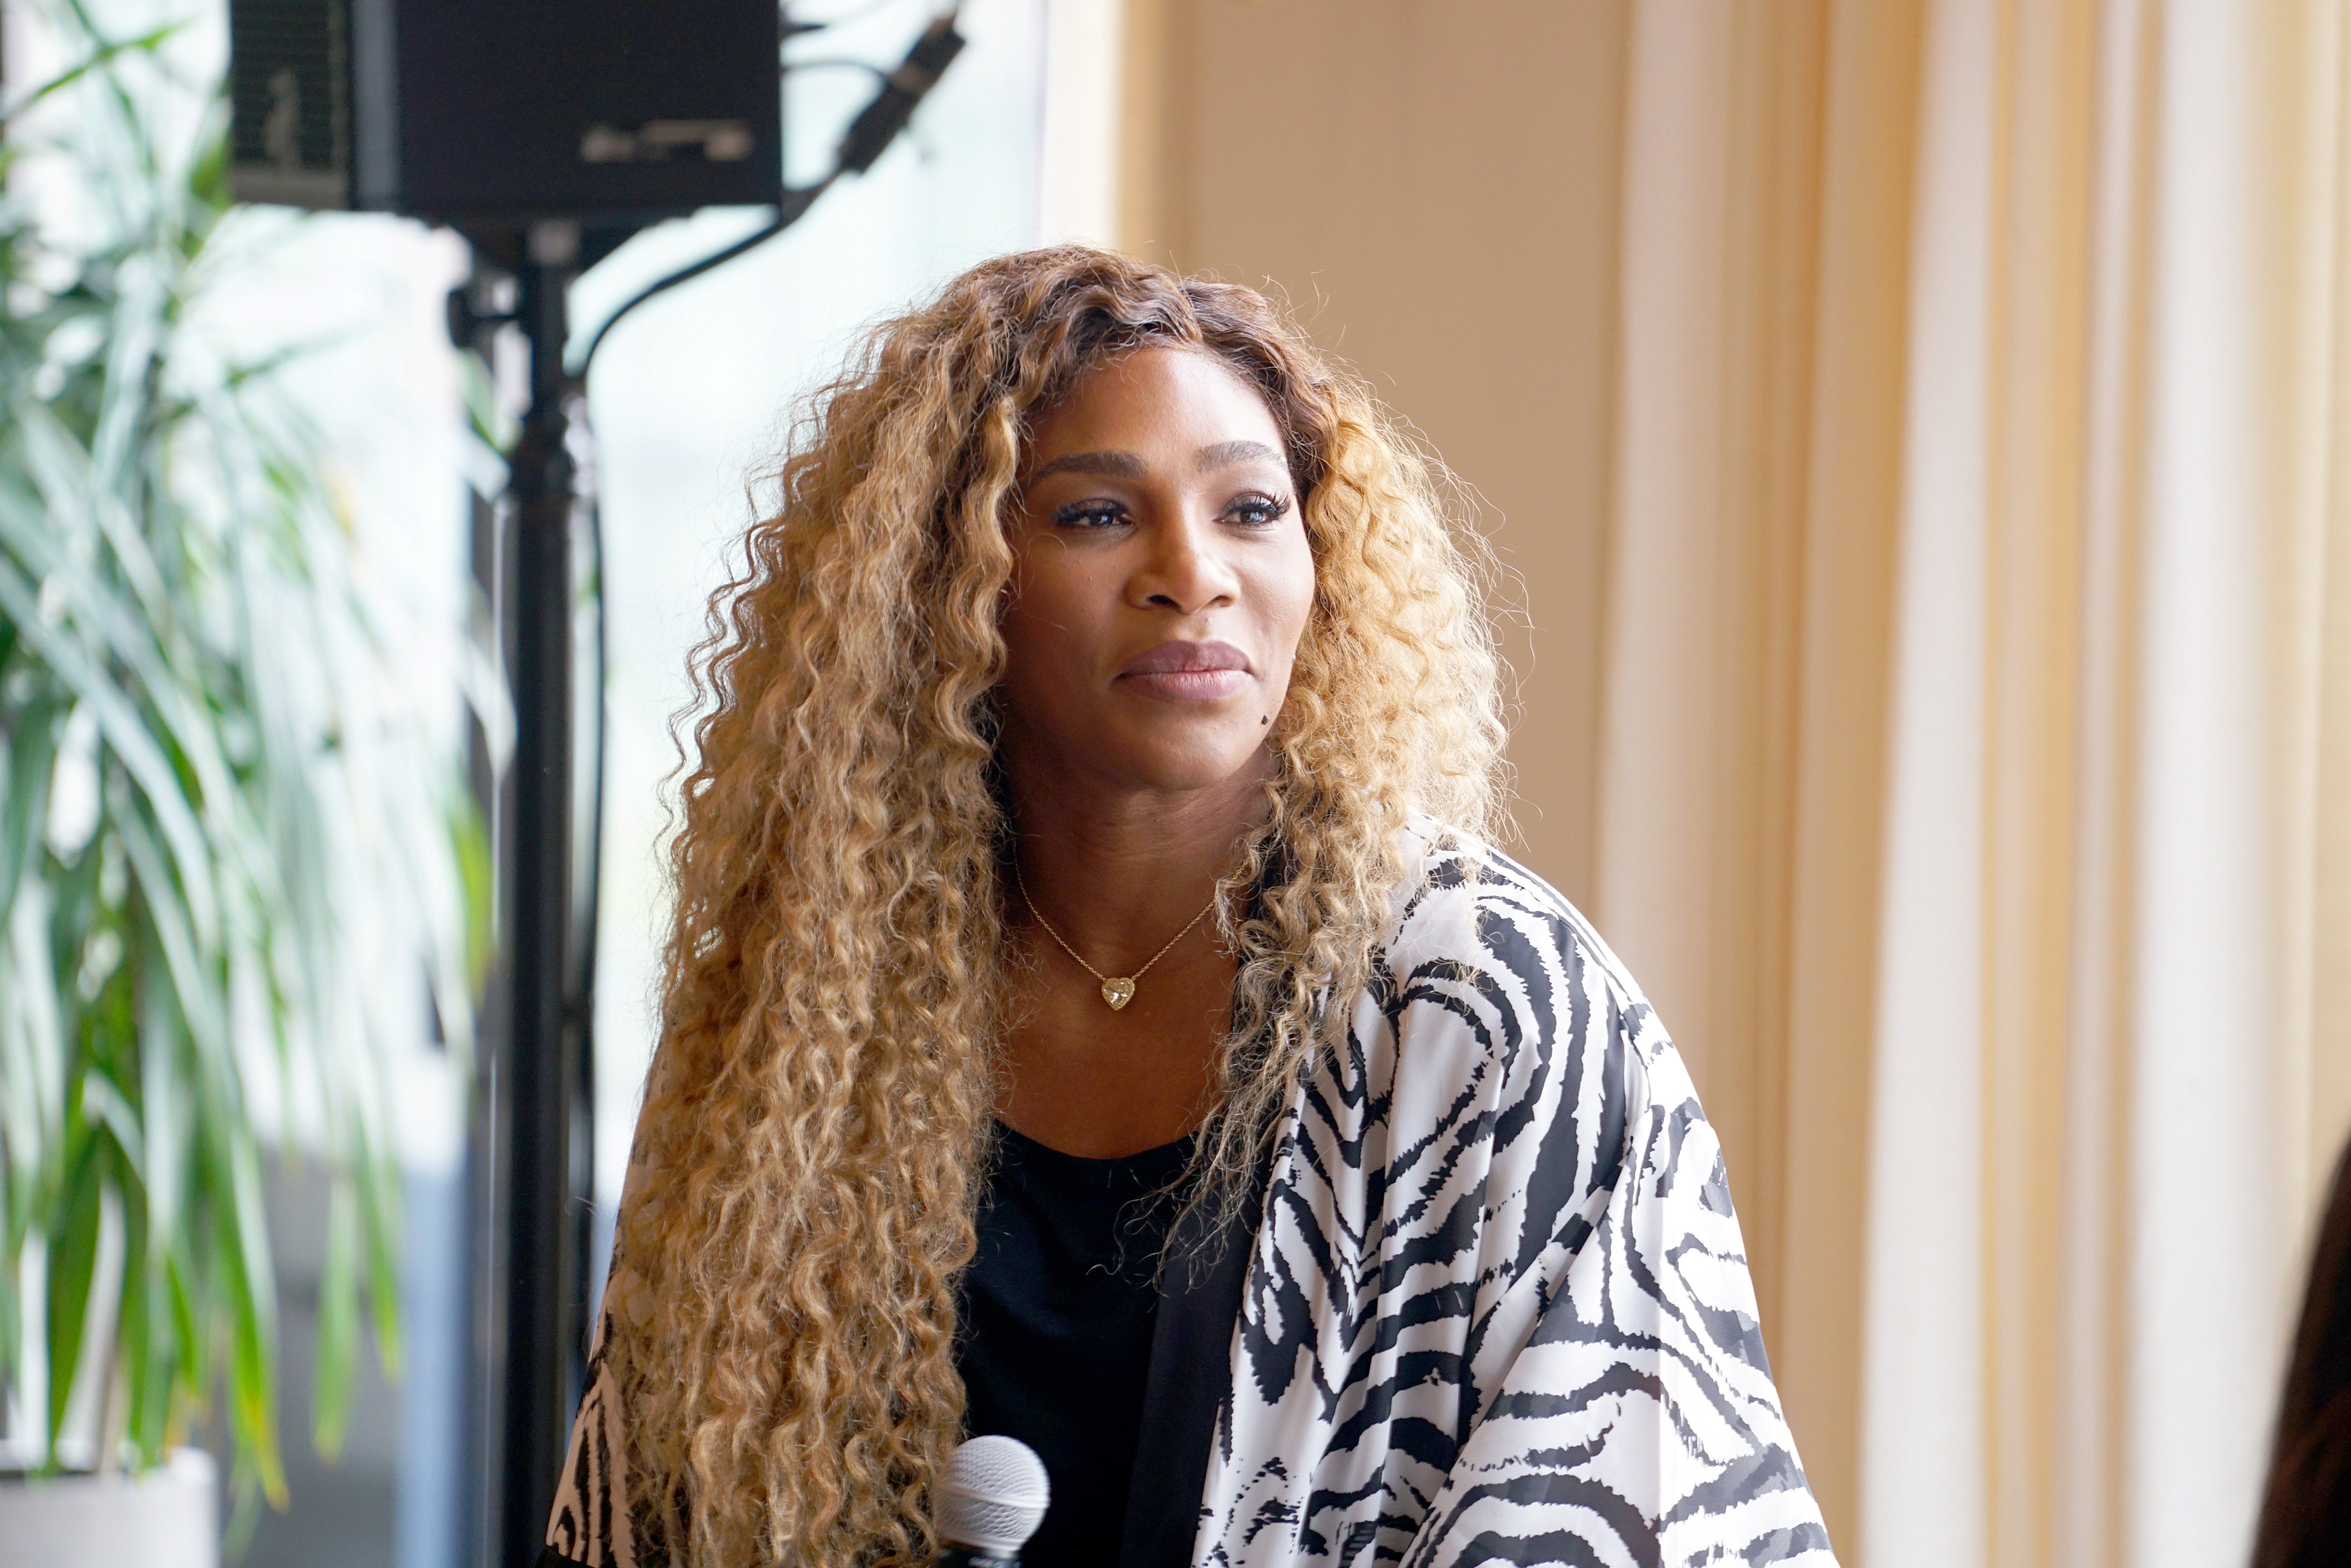 """Serena Williams pictured during New York Fashion Week's """"The Shows"""" on September 09, 2019 in New York City.   Source: Getty Images"""